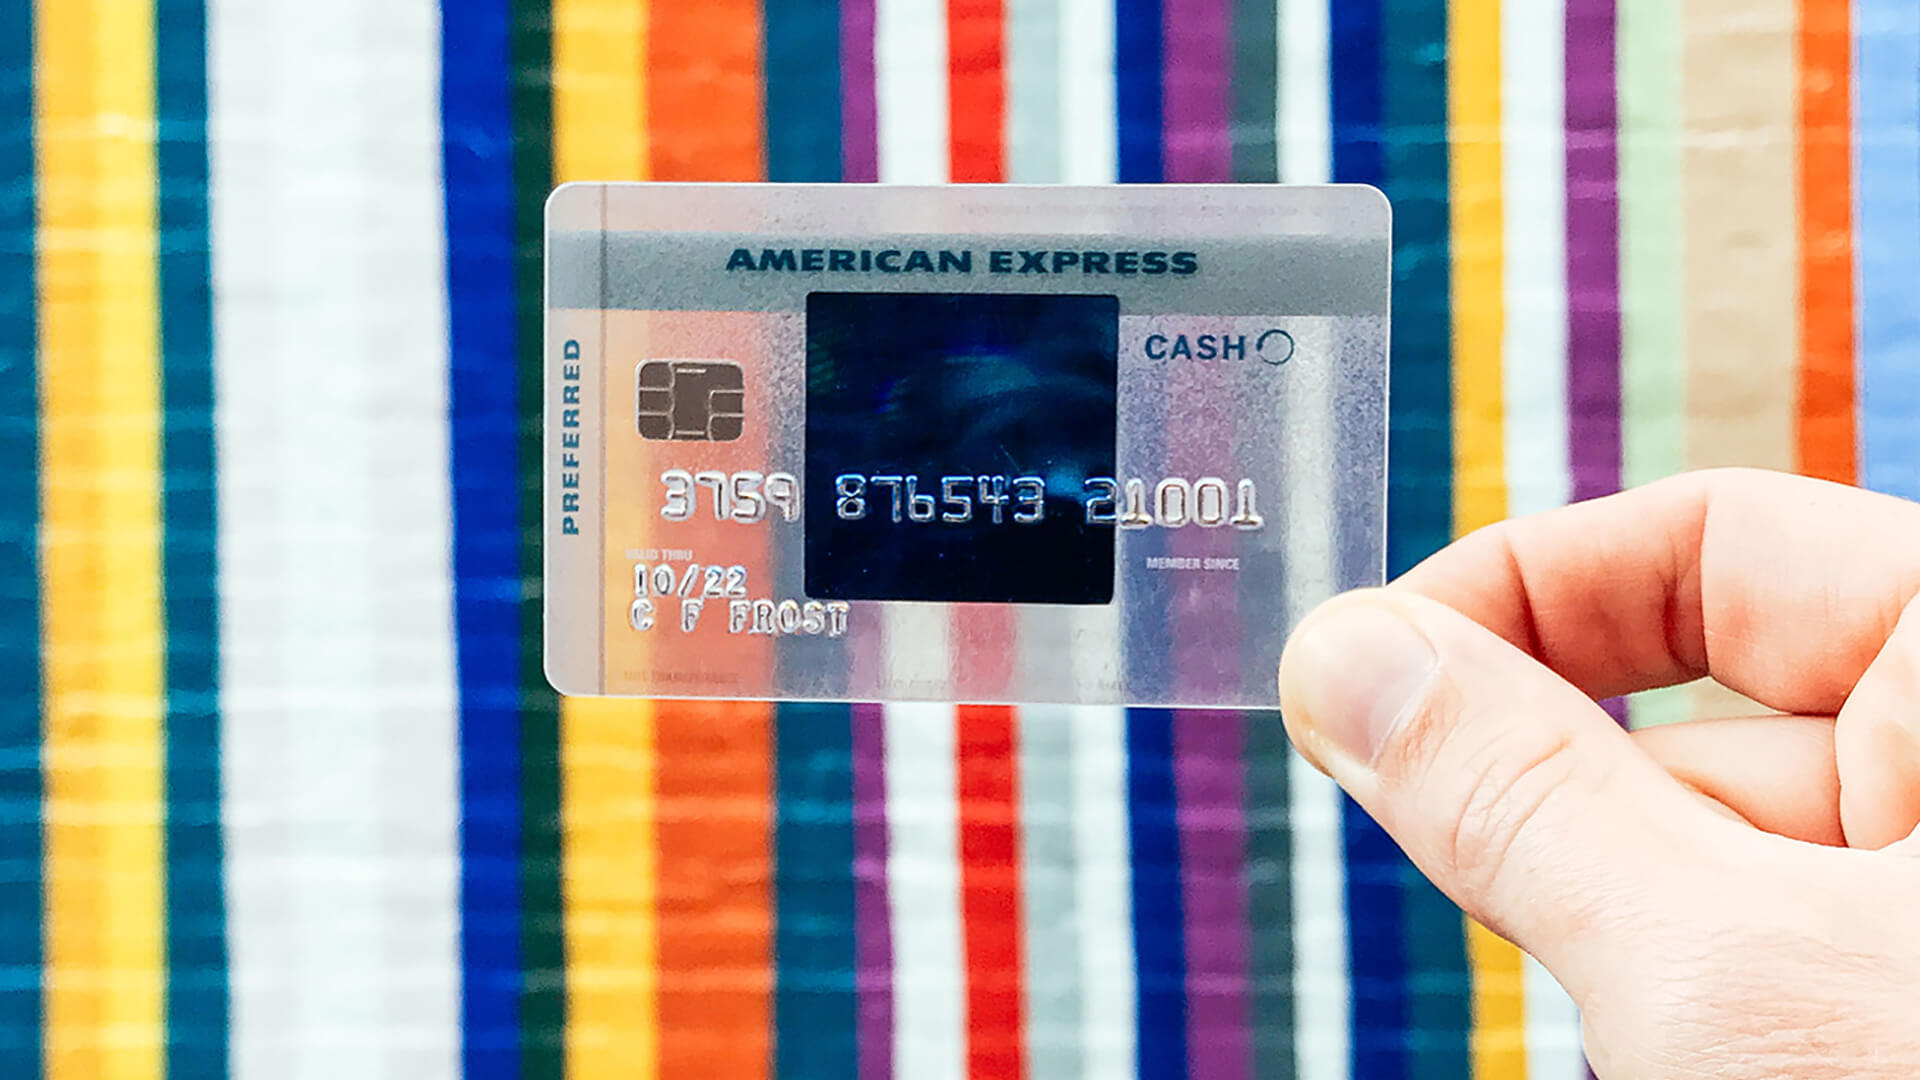 American Express Blue Cash Everyday Review: Great Cash Back